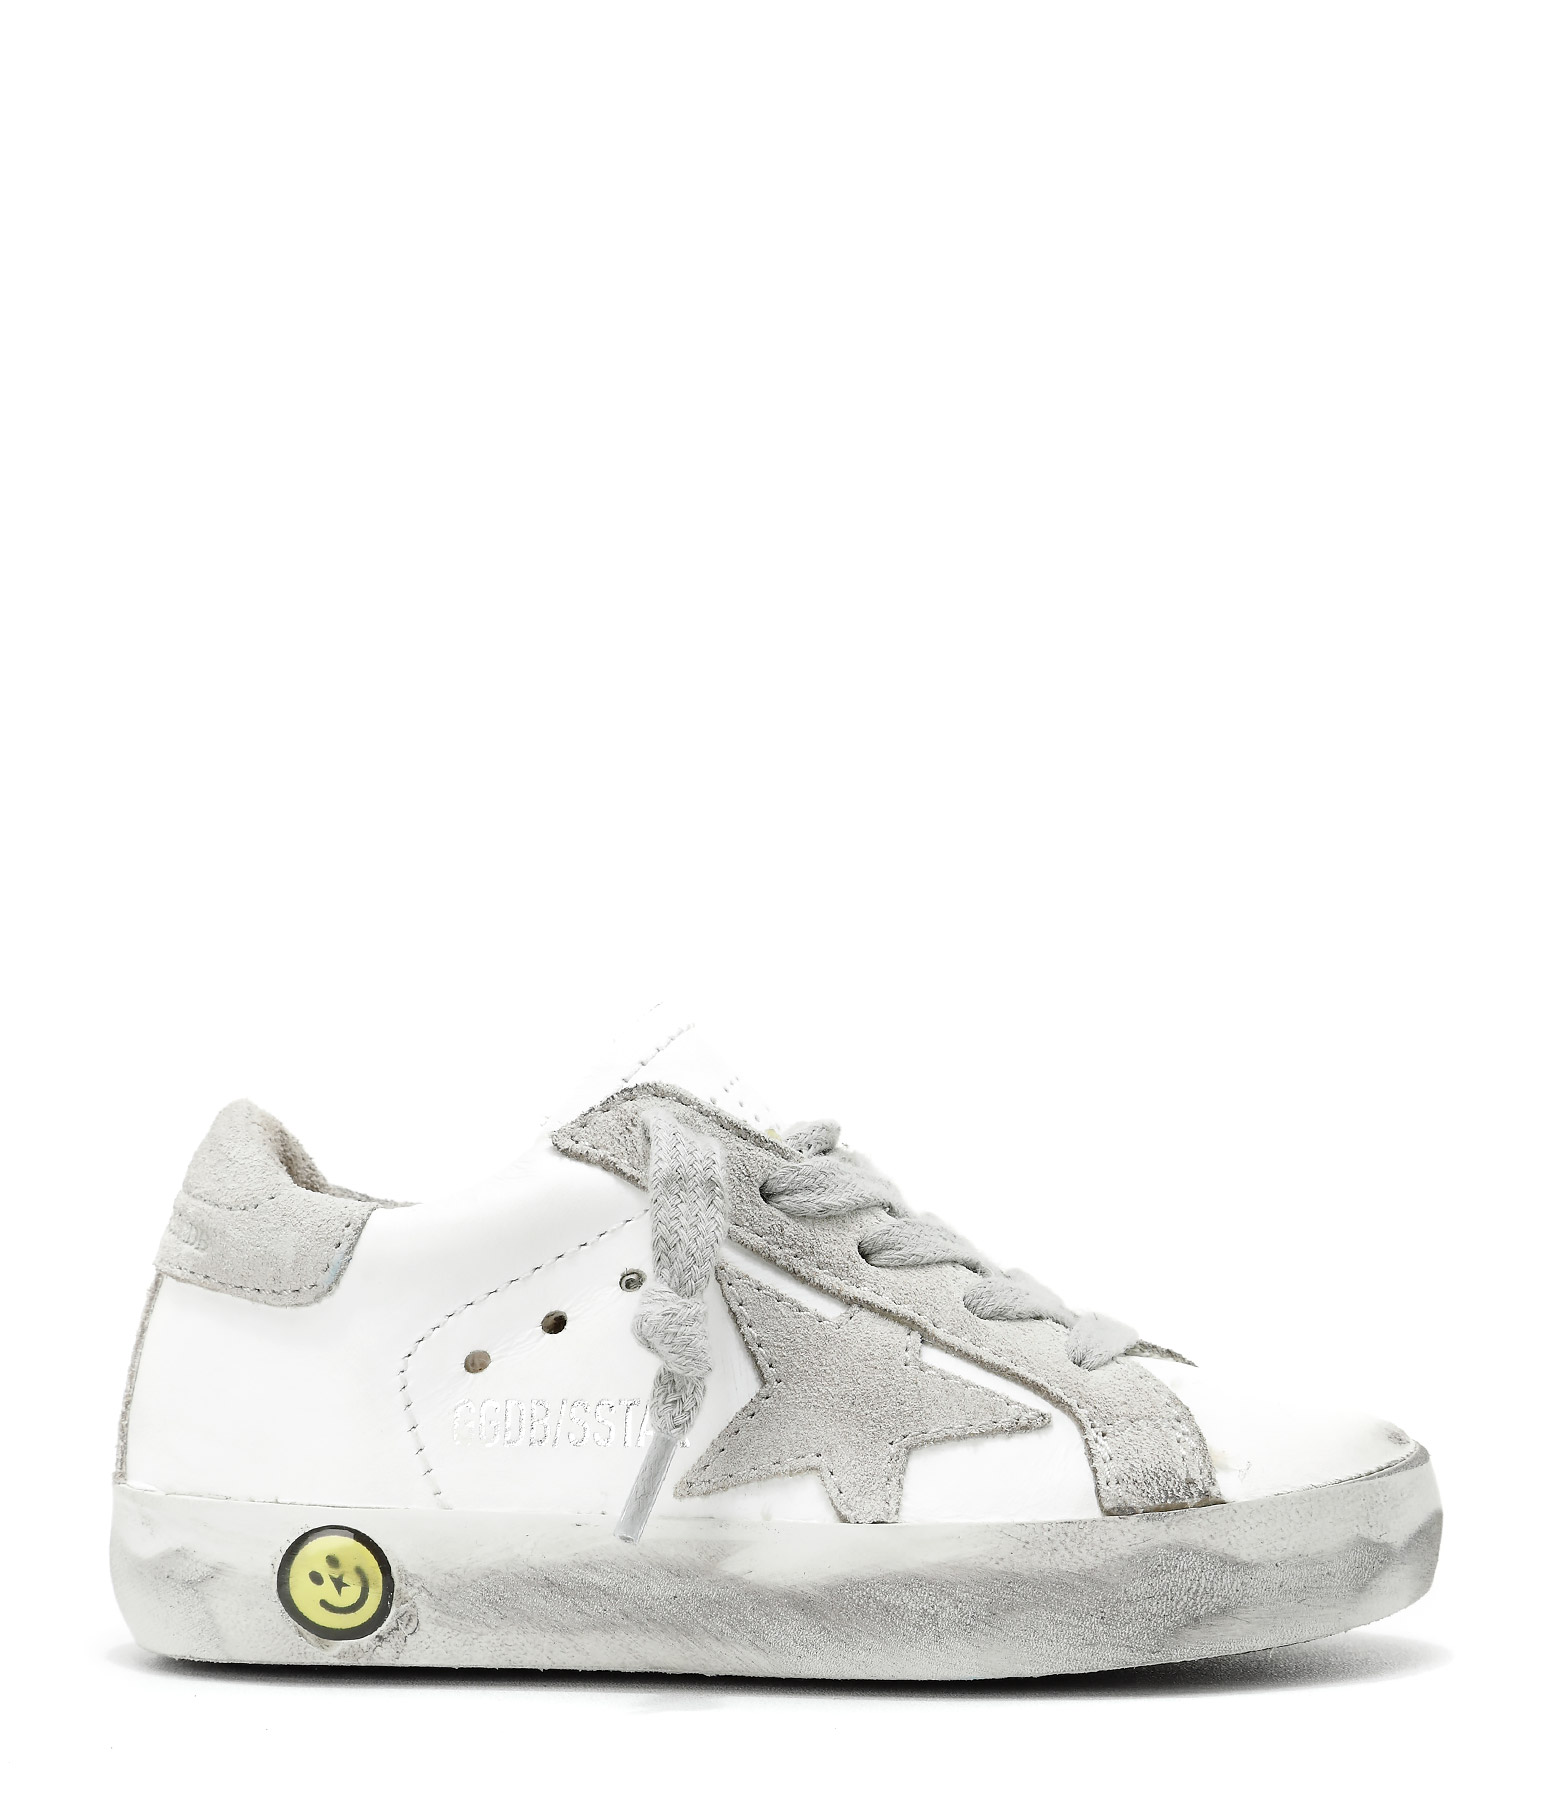 Sneakers Bébé Superstar White Leather